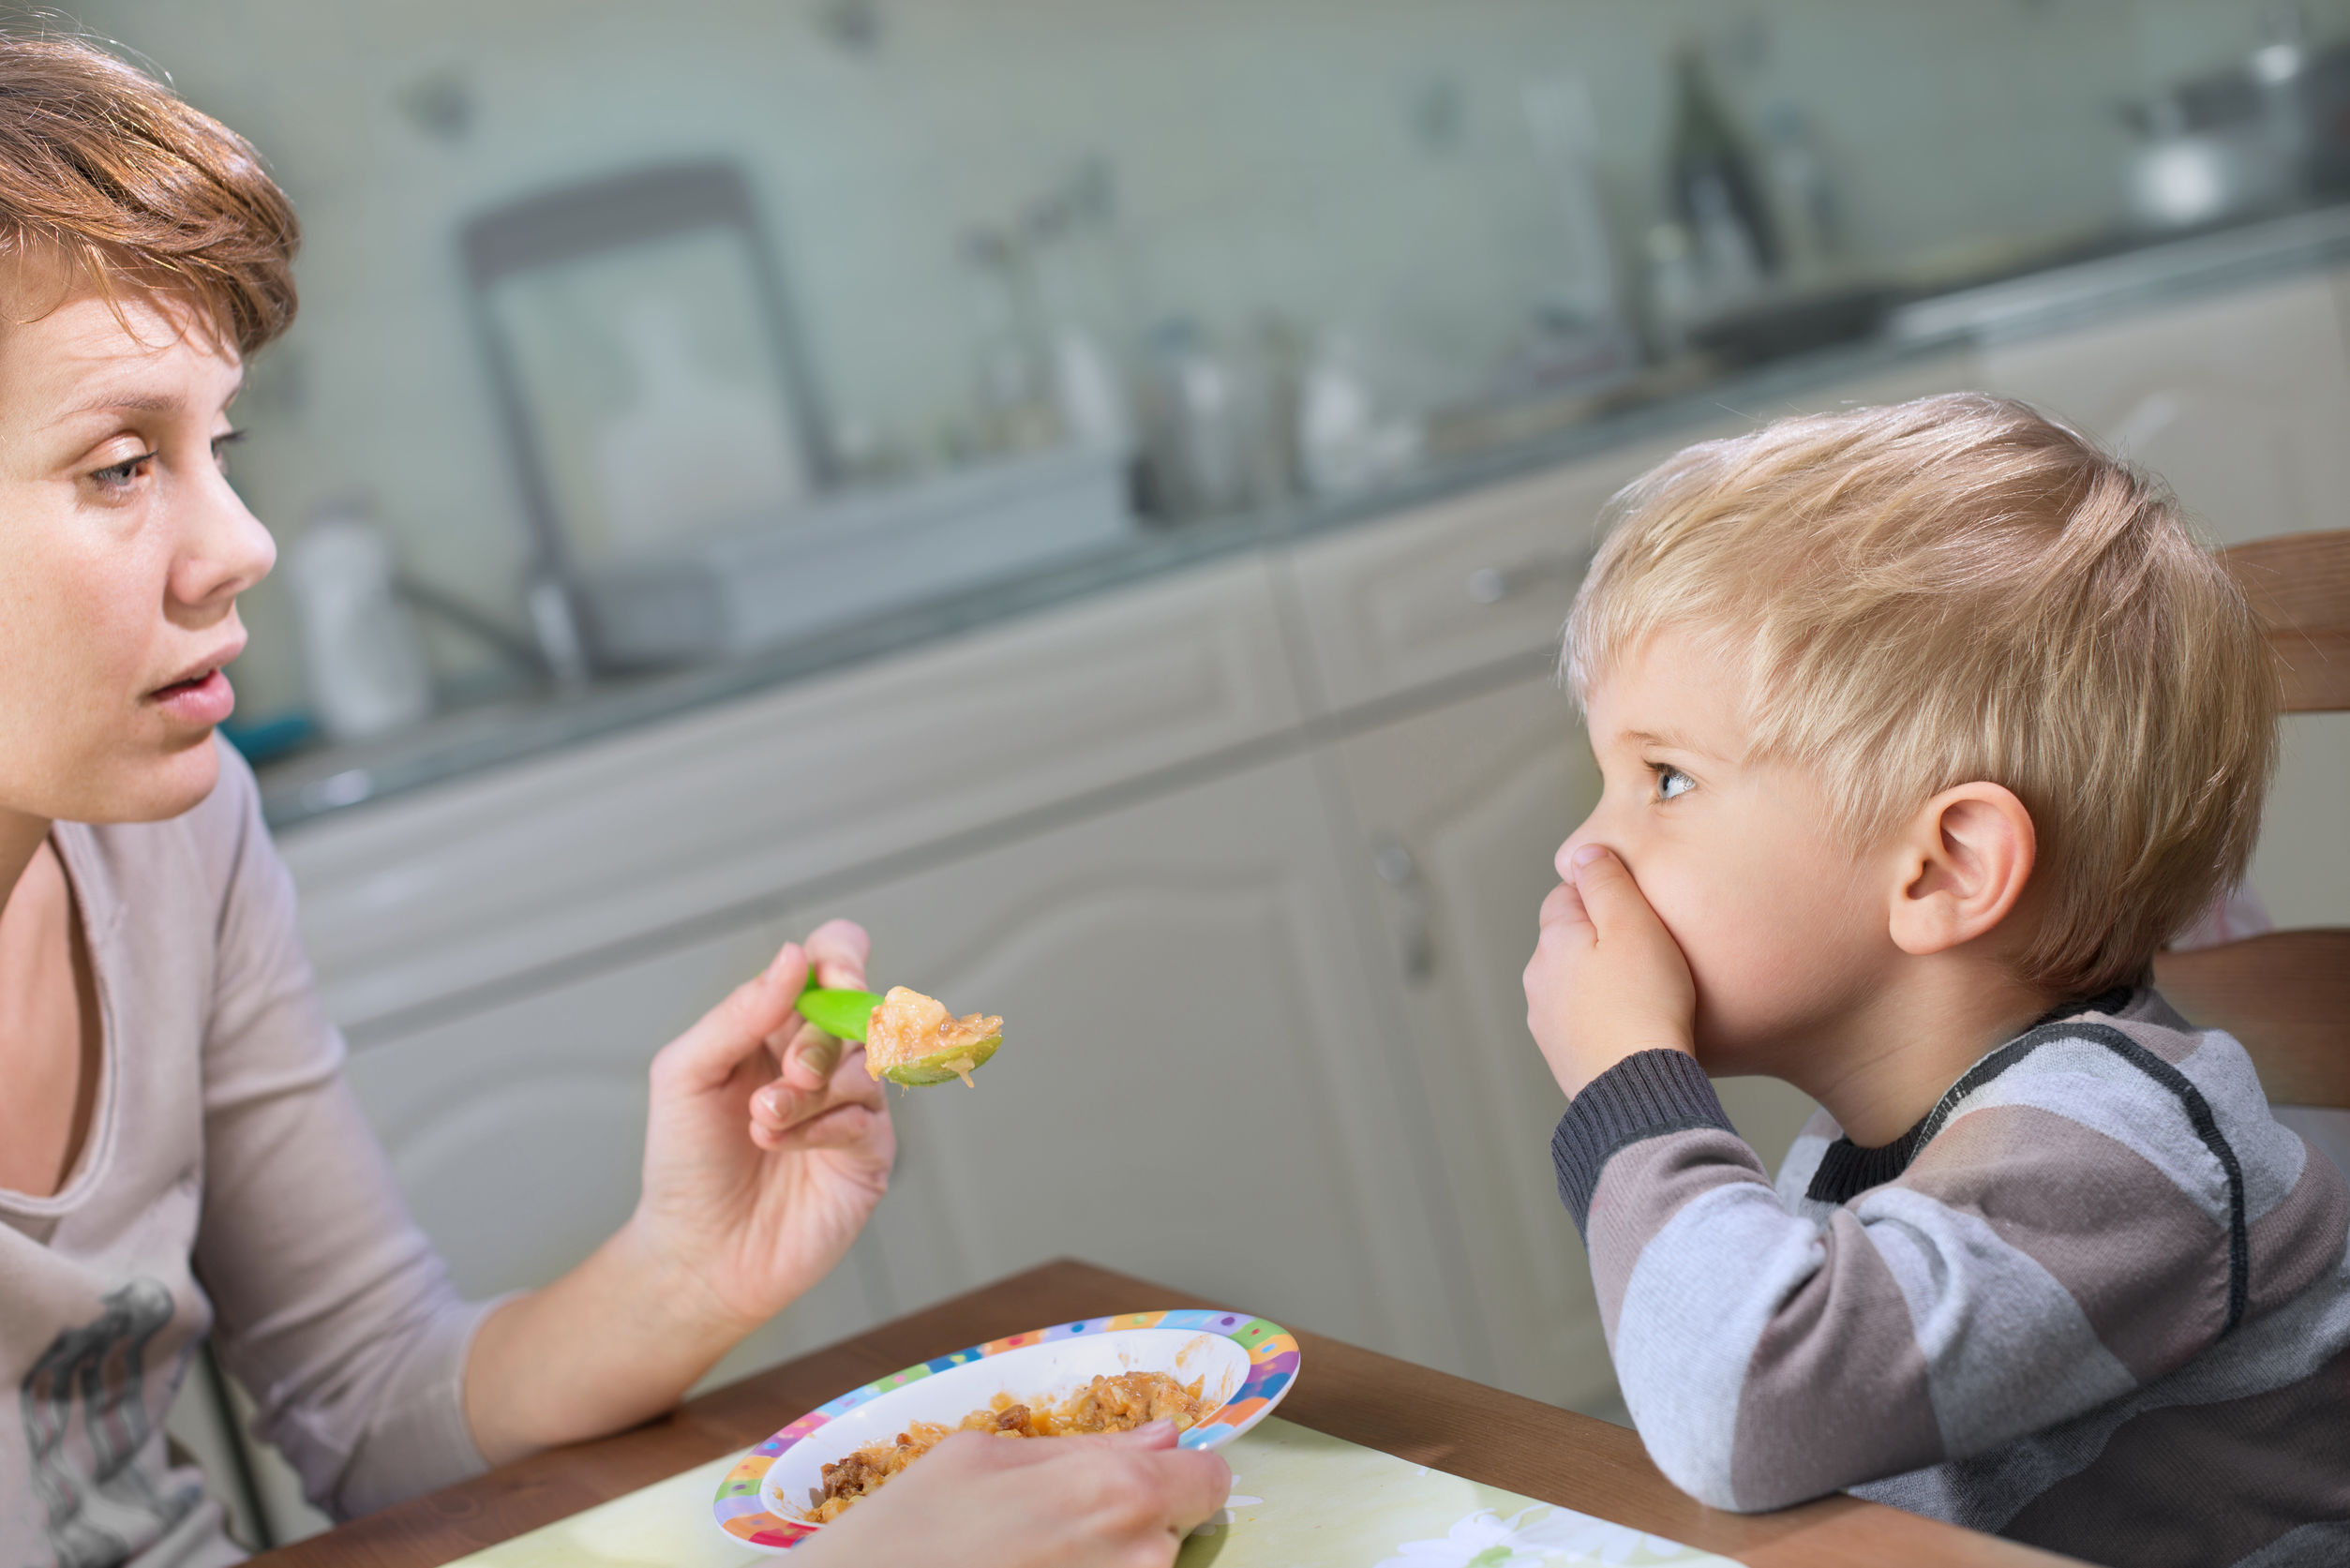 ARFID is not the same as a picky eater. This is a picture of a mom trying to feed a small boy but he is covering his mouth and refusing food.